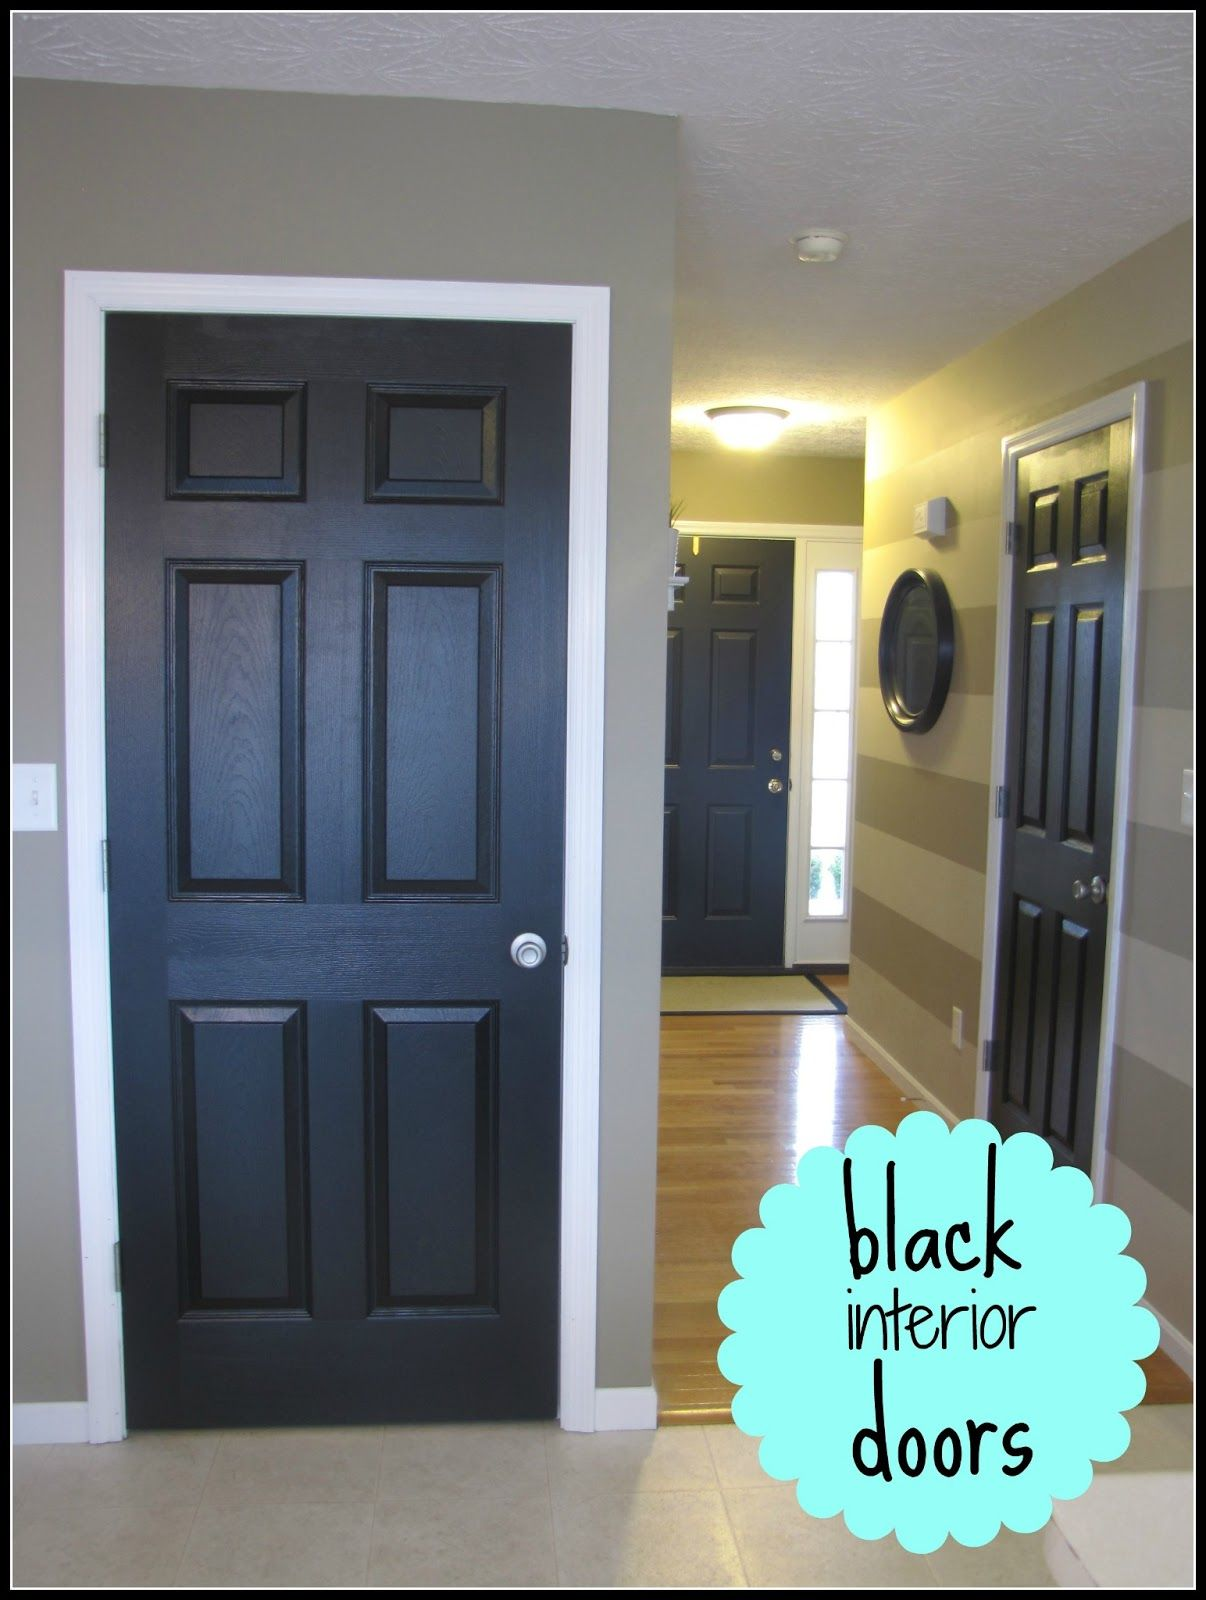 love this look black painted interior doors plus a neat hint on